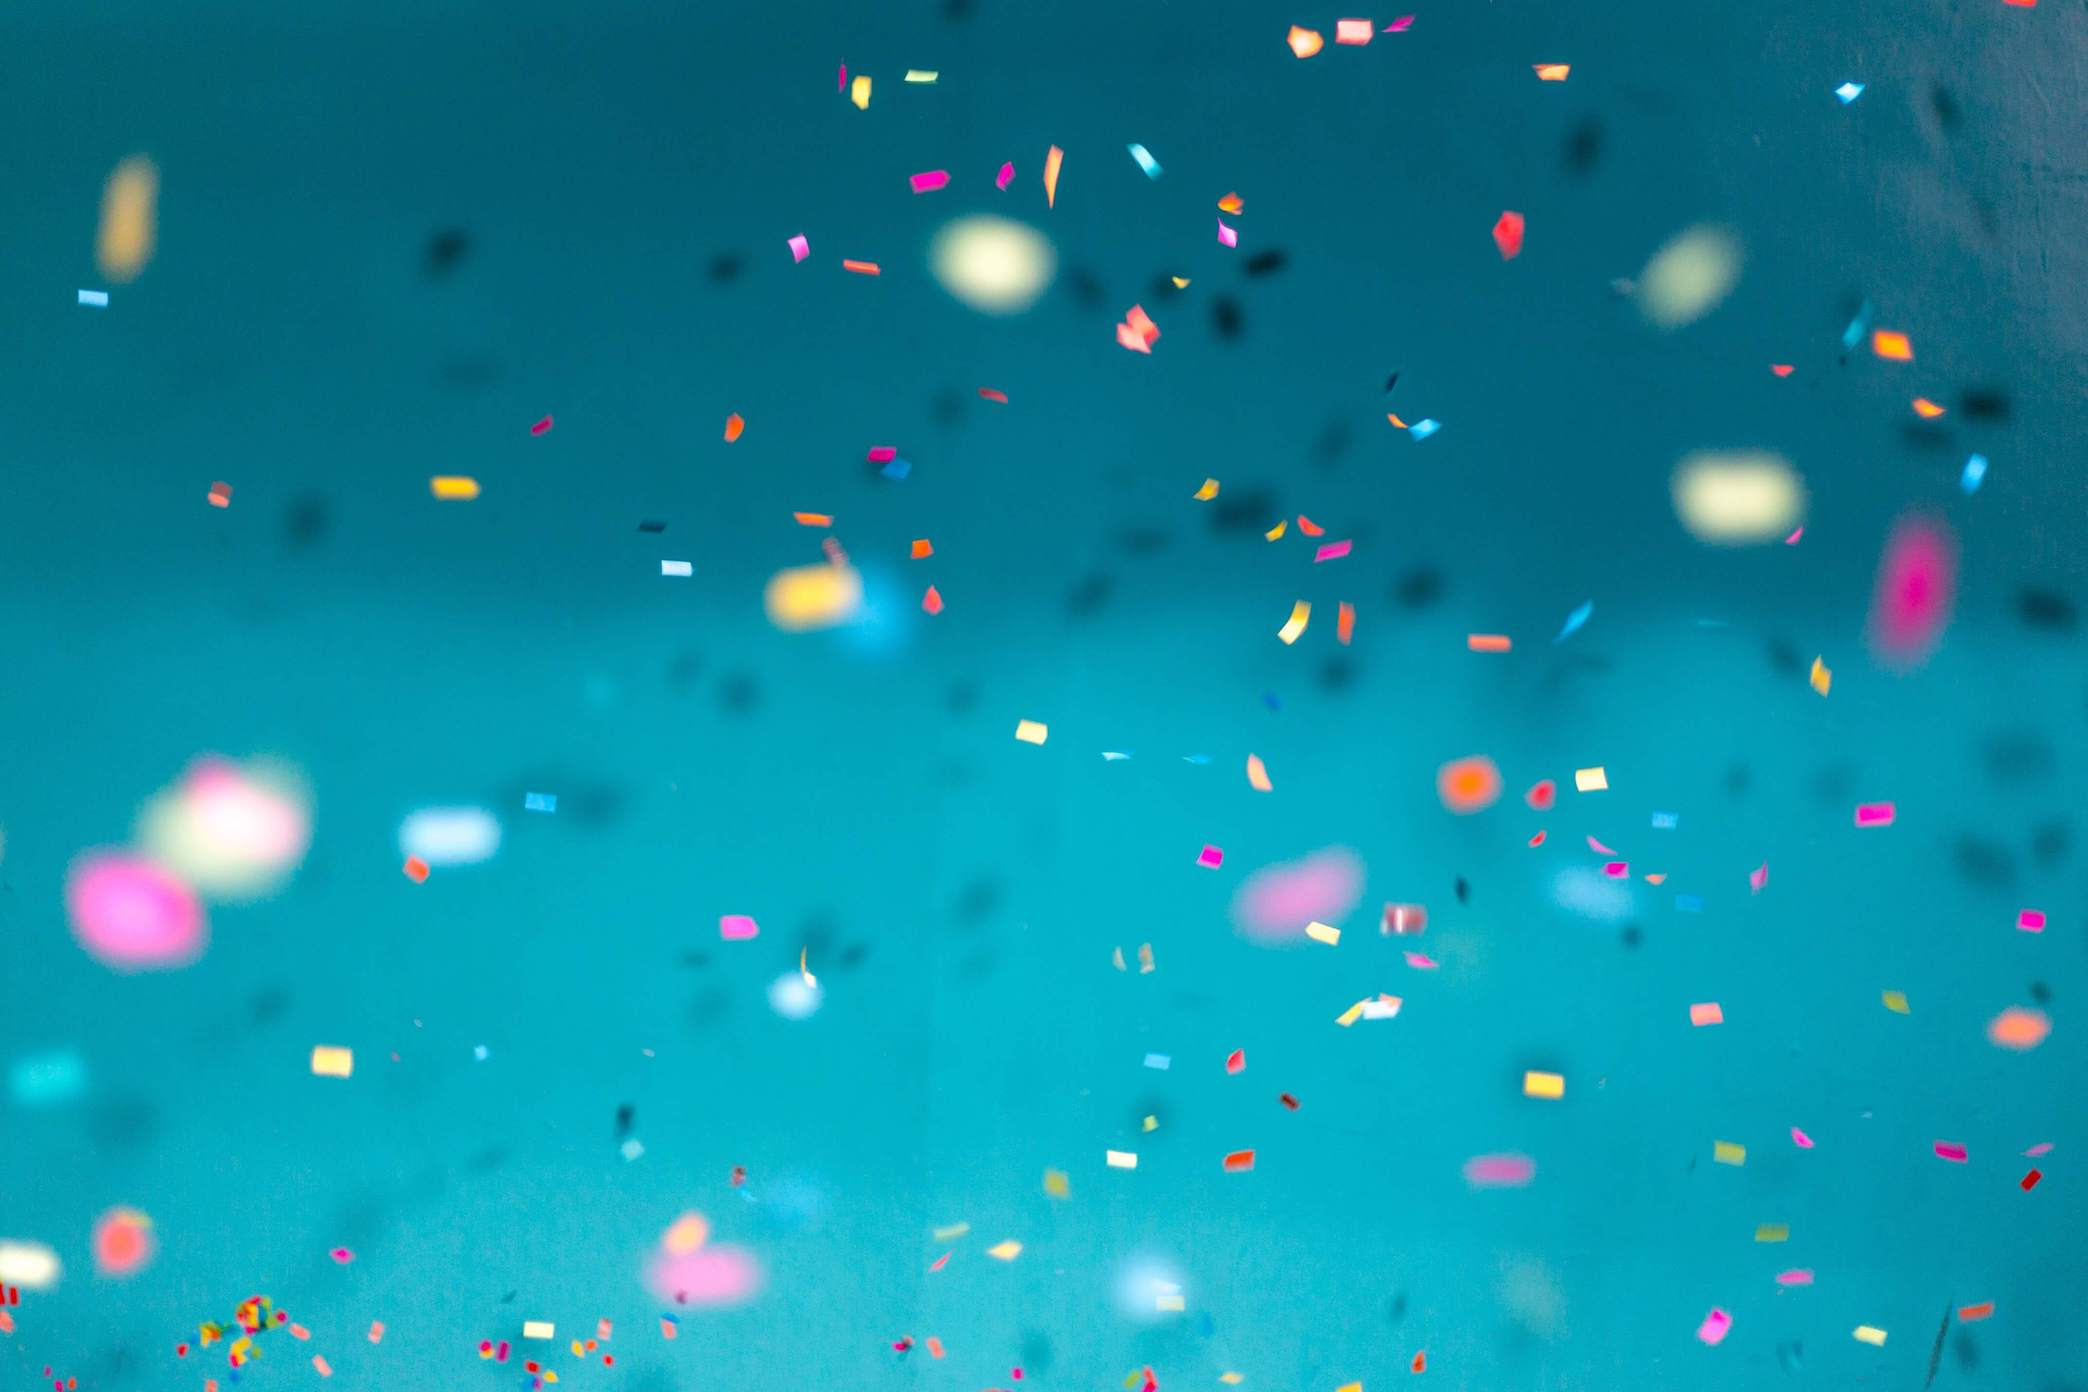 Colorful confetti falling against a teal backdrop